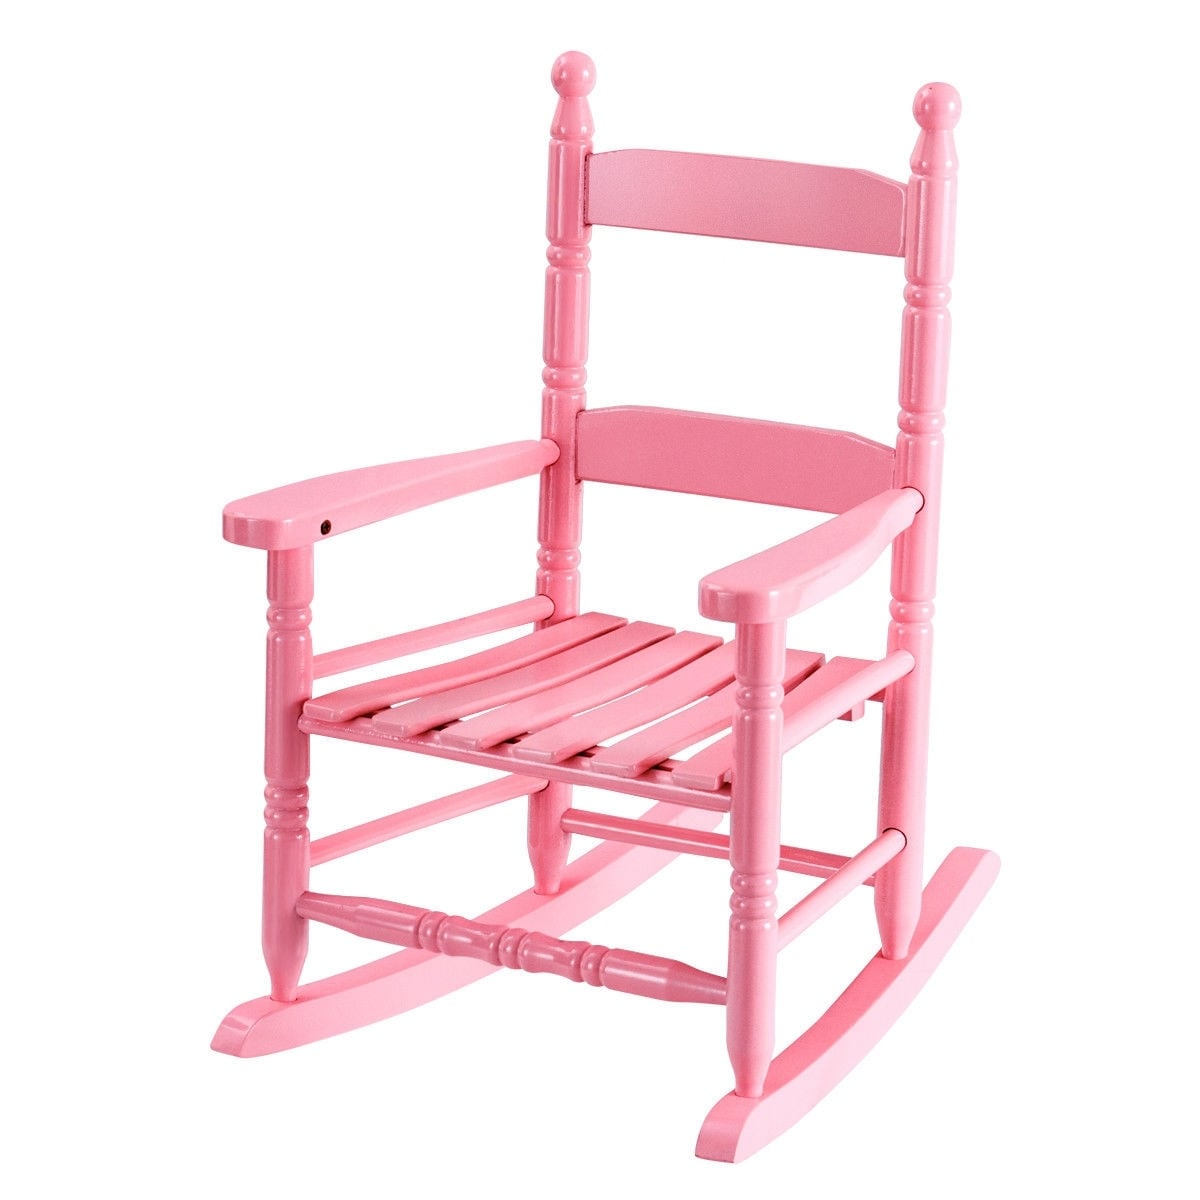 Child Wooden Rocking Chair Classic Wooden Children Kids Rocking Chair Slat Back Furniture Bedroom Pink